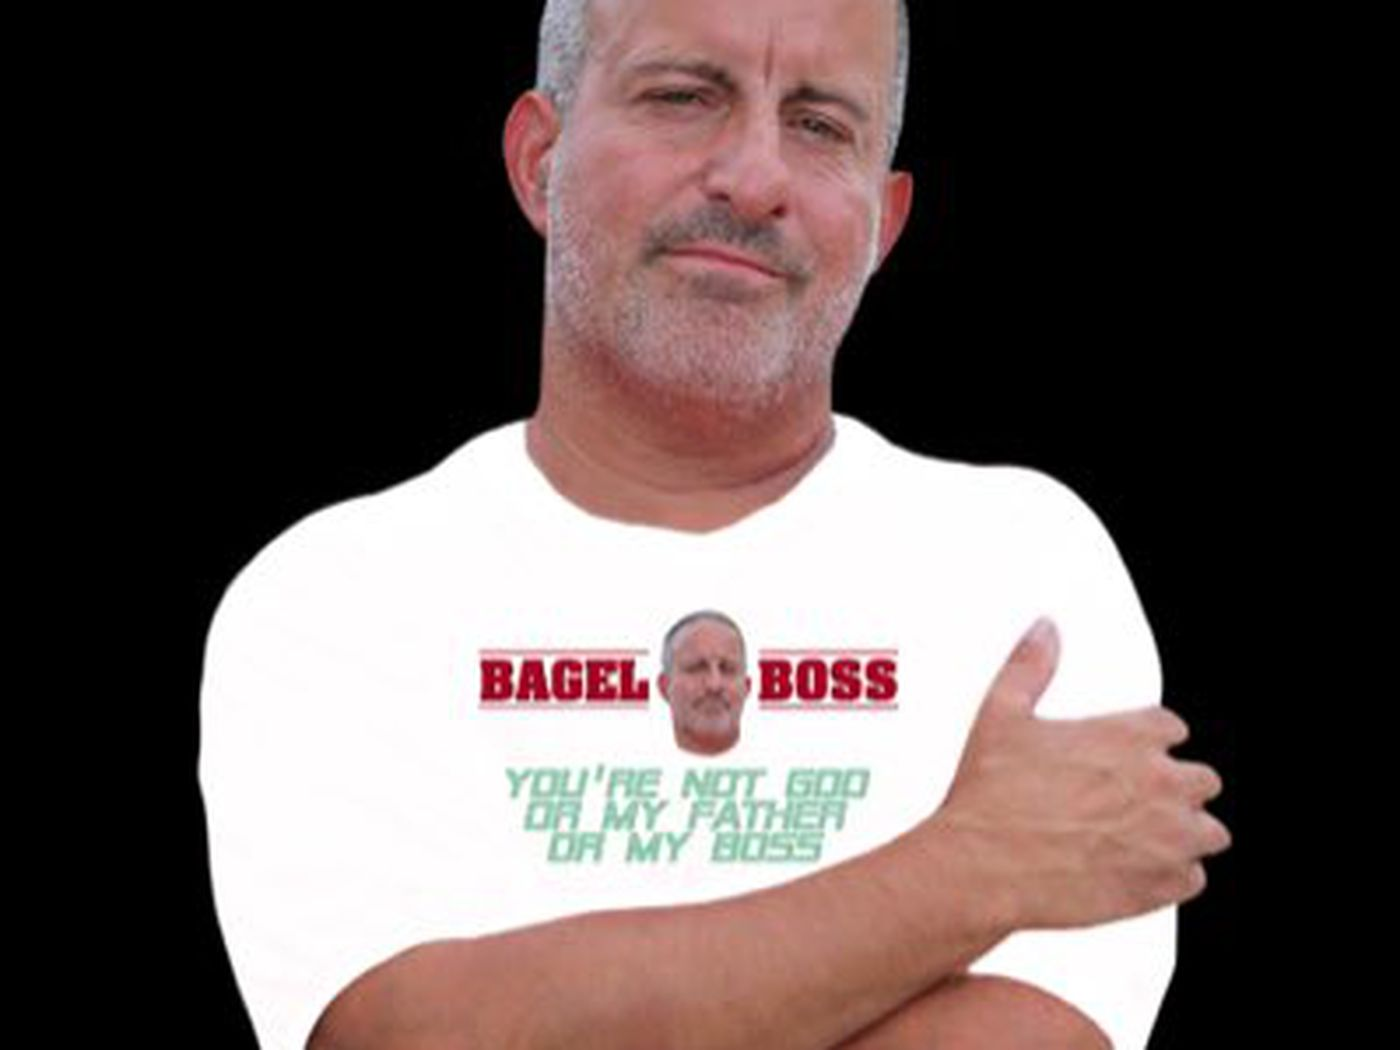 Angry Bagel Guy From Long Island Chris Morgan Reportedly Lives in a